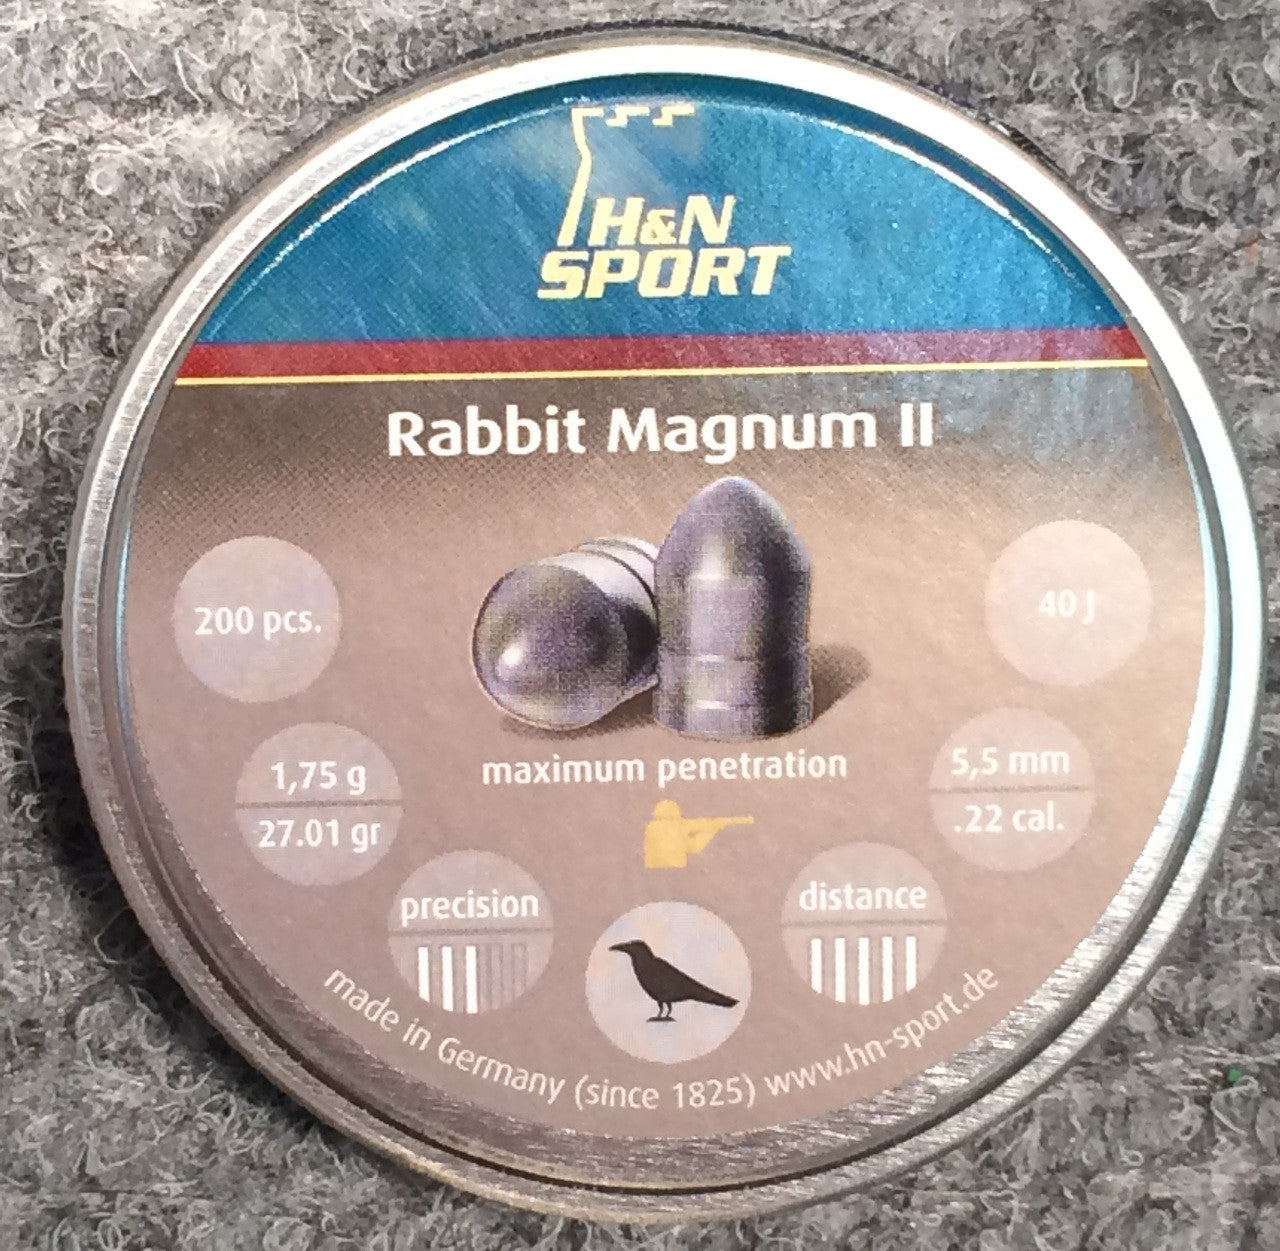 H&N Rabbit Magnum II 22 Cal Air Pellets 1,64g / 25.31gr >40J for PCP Rifles ONLY (200pk) (2416)